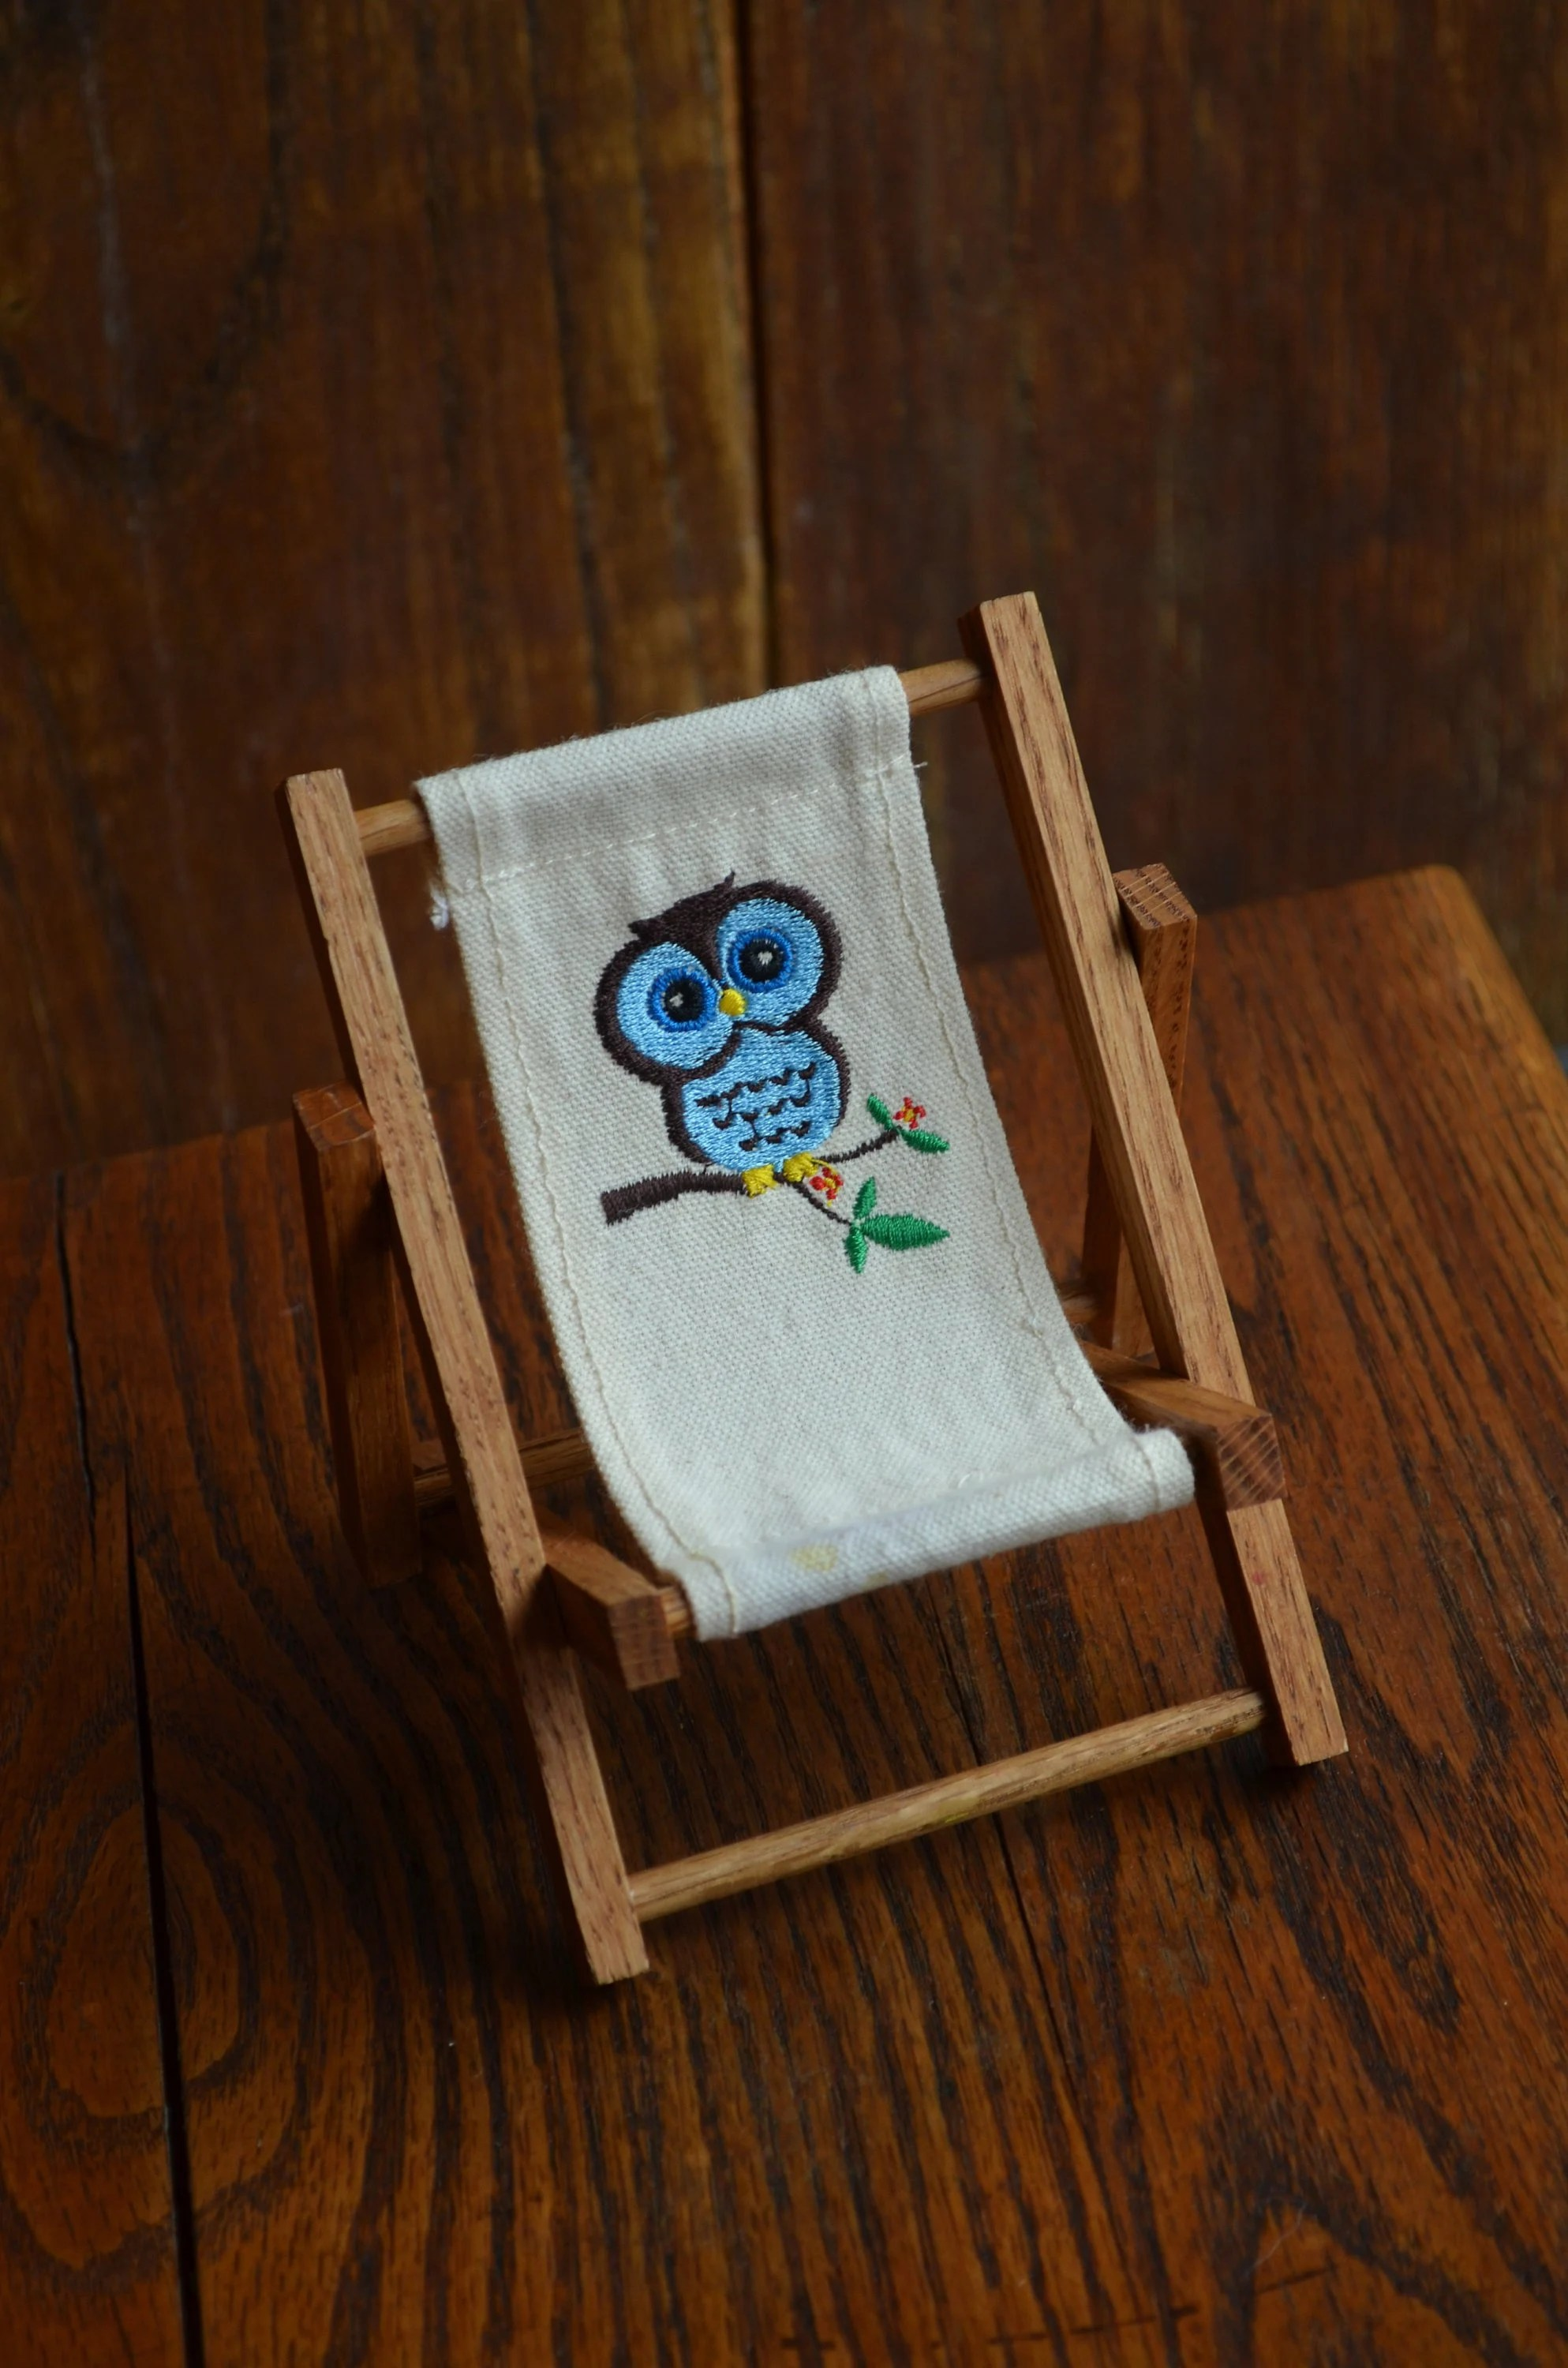 Owl Chair Vintage Dollhouse Folding Lounge Chair With Blue Owl On White Canvas Material Wood Patio Chair For Madeline Dolls Or 6